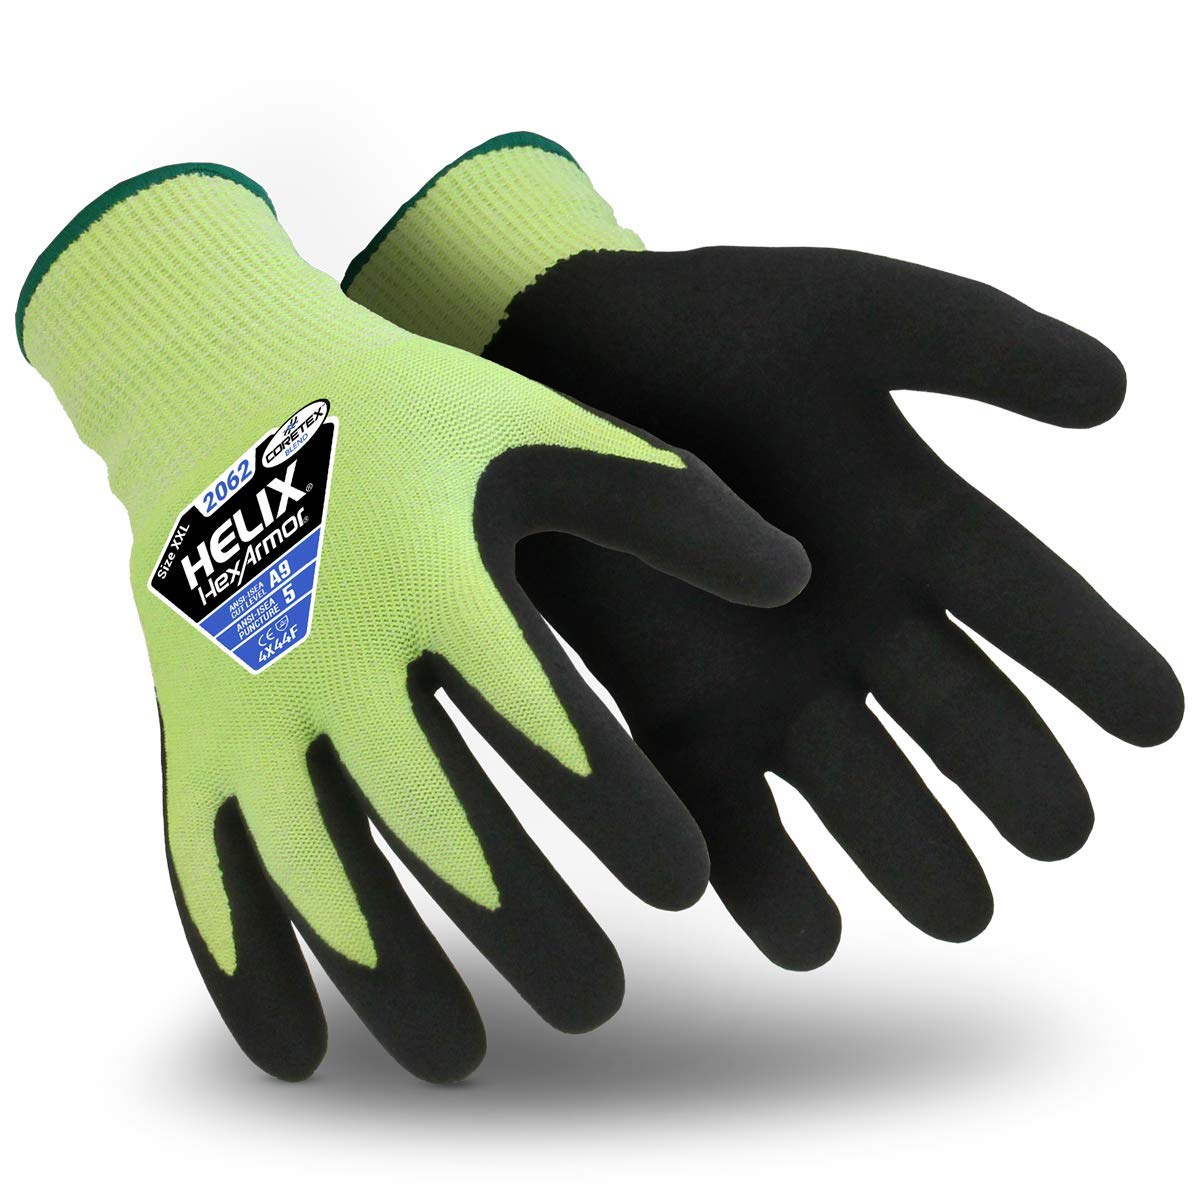 HexArmor Helix 2062 Seamless Knit Work Gloves with Nitrile Grip, Large